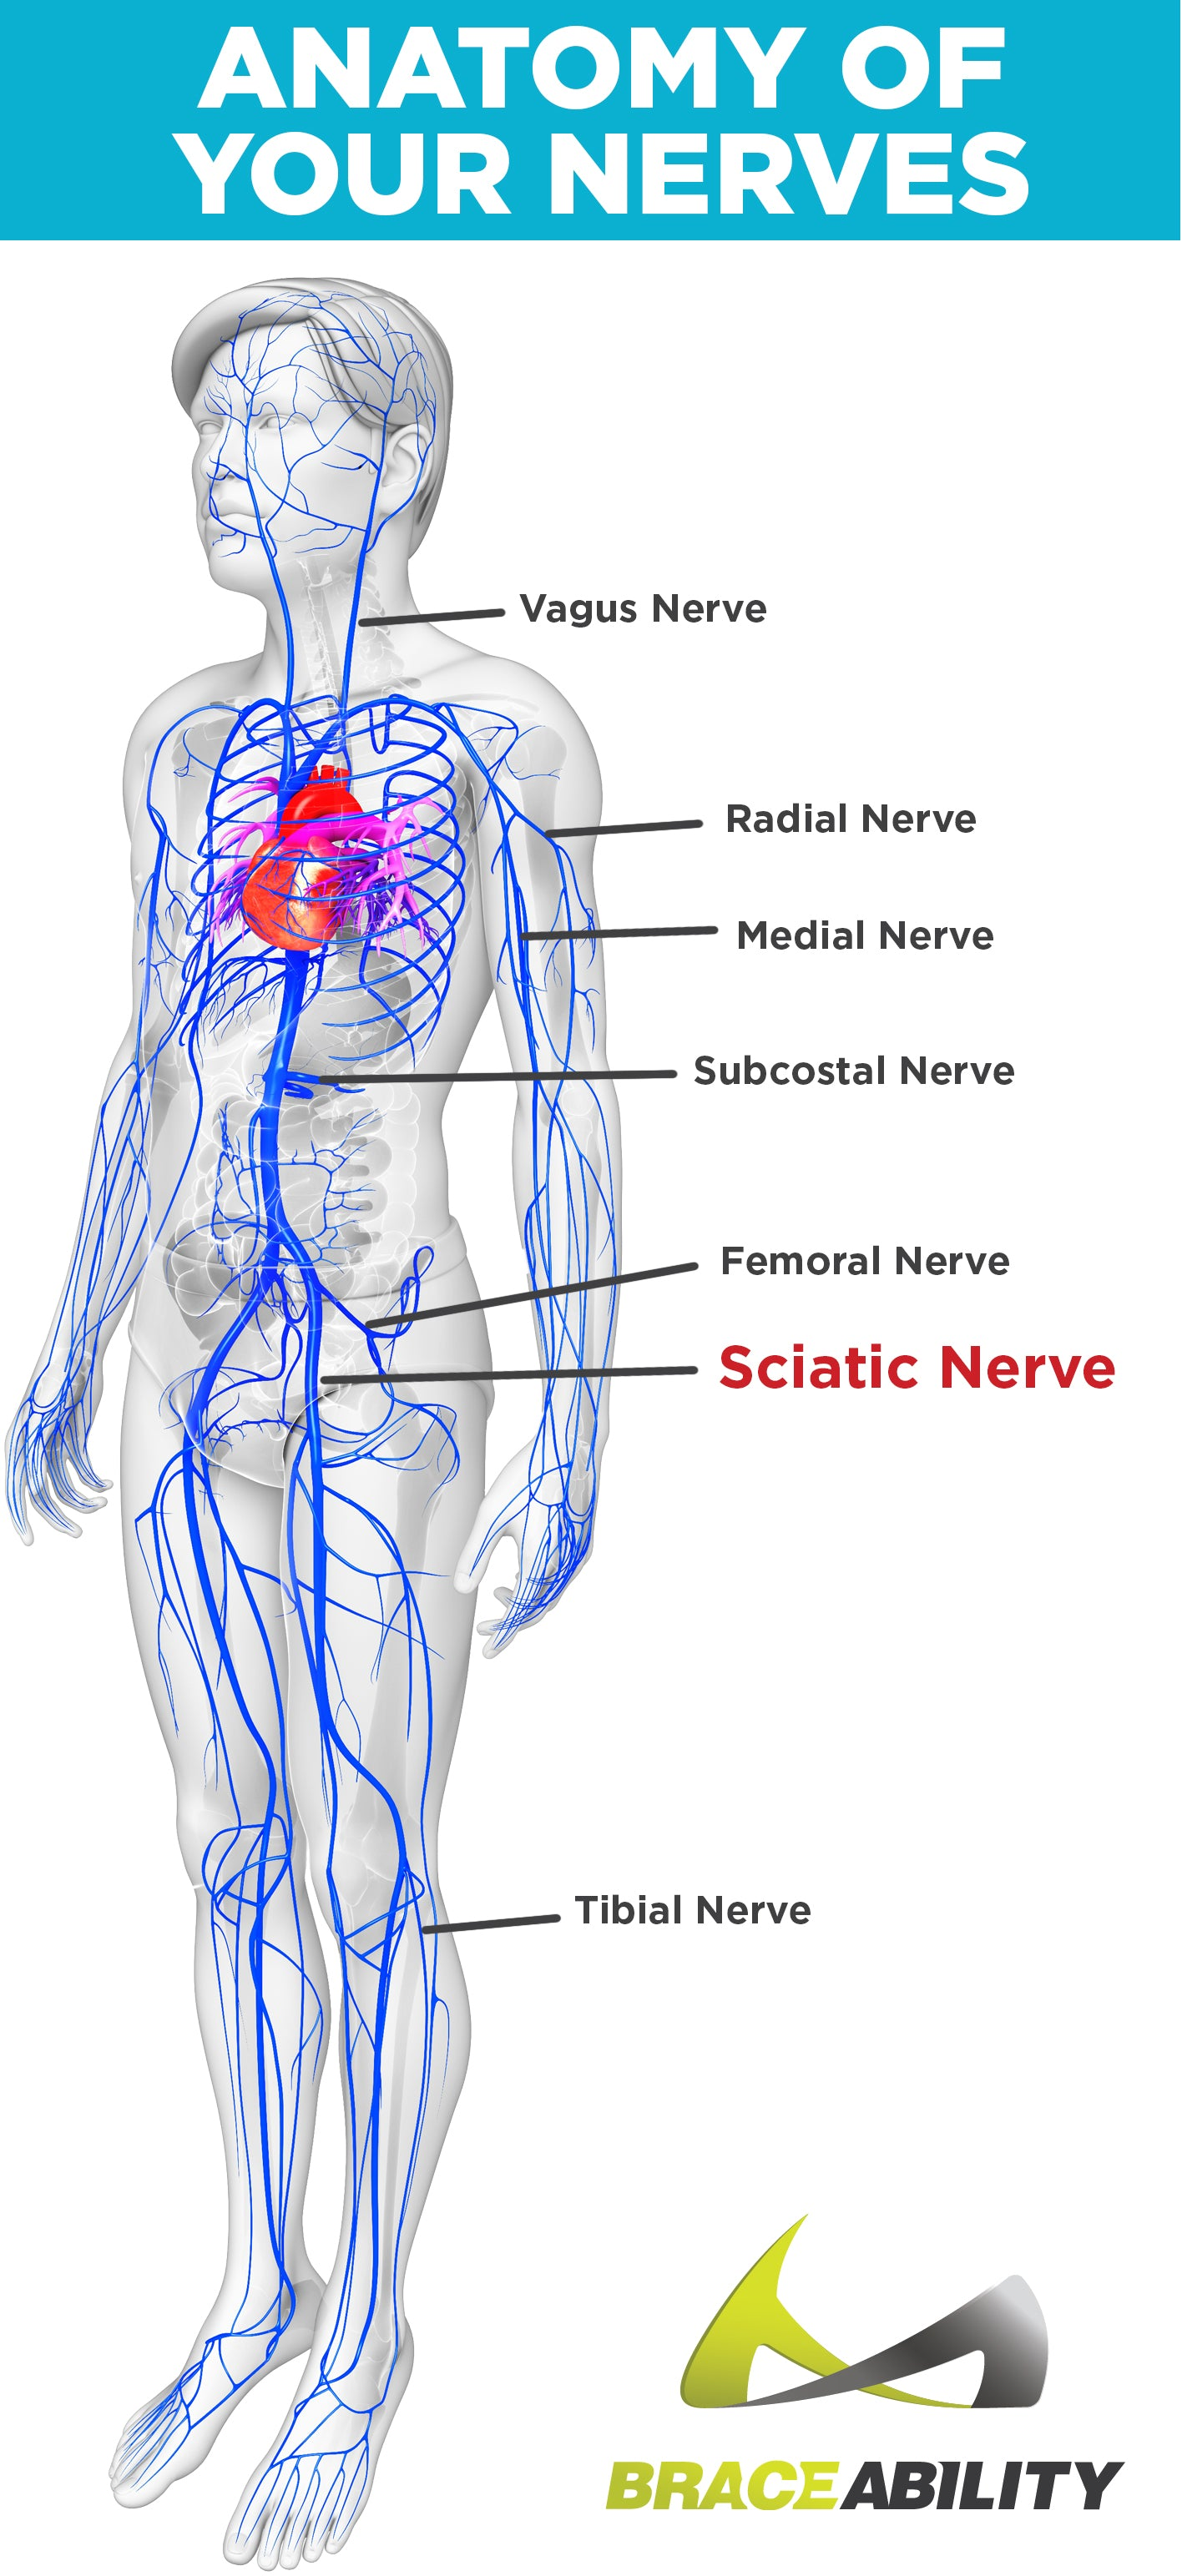 sciatica \u0026 pinched nerve pain symptoms, causes \u0026 lower back treatment Nerve Route Patterns Referred Pain nerves in the the human body labeled